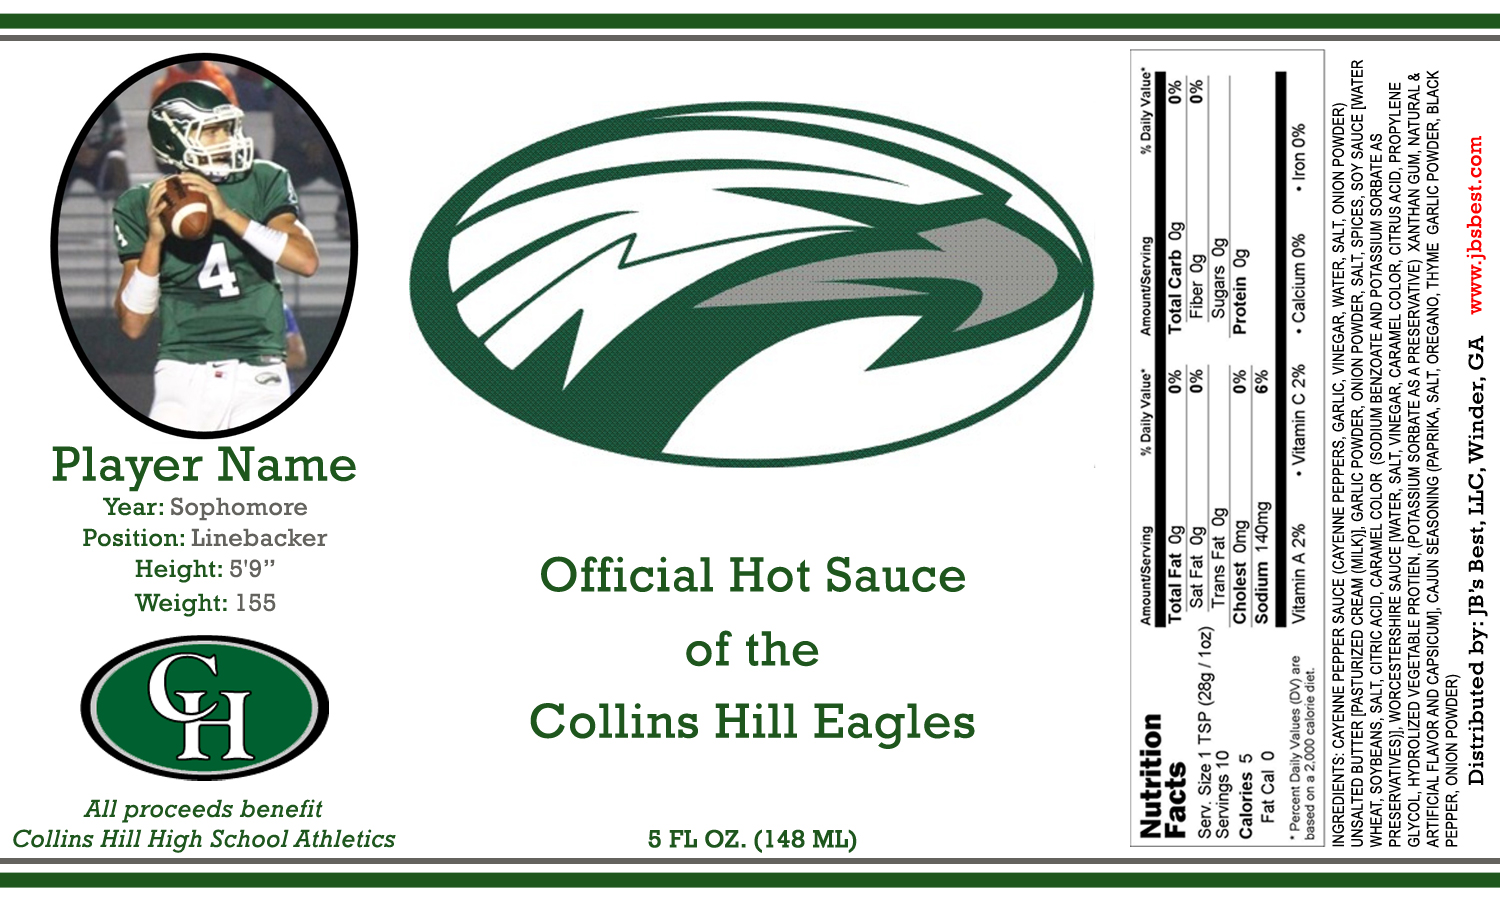 collins-hill-eagles-image